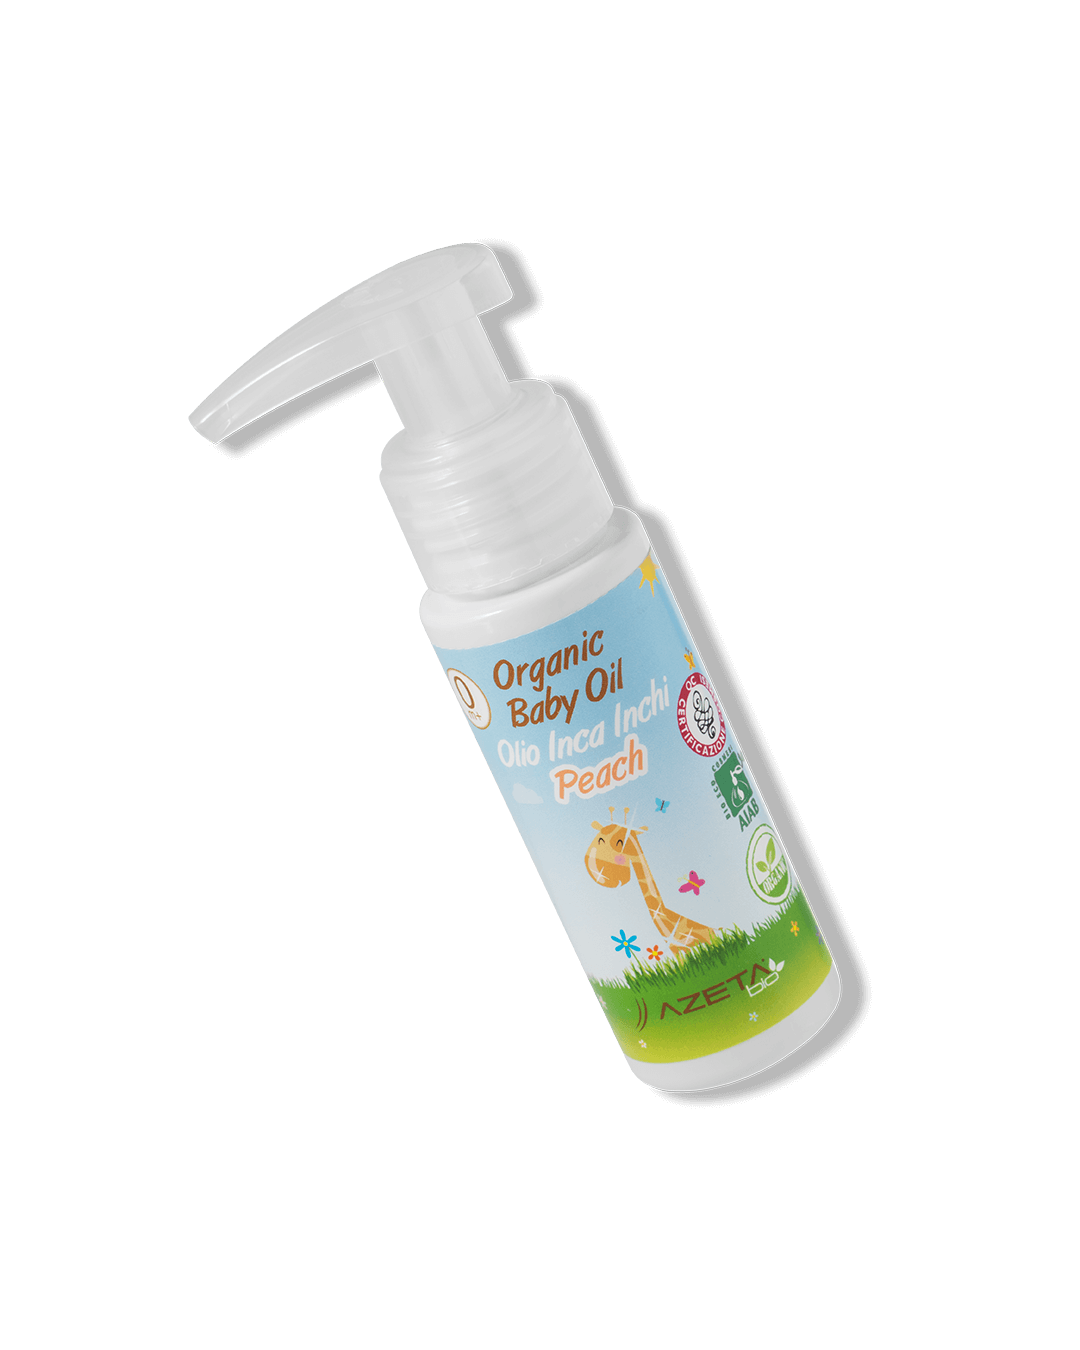 Organic Baby Oil Massage Peach